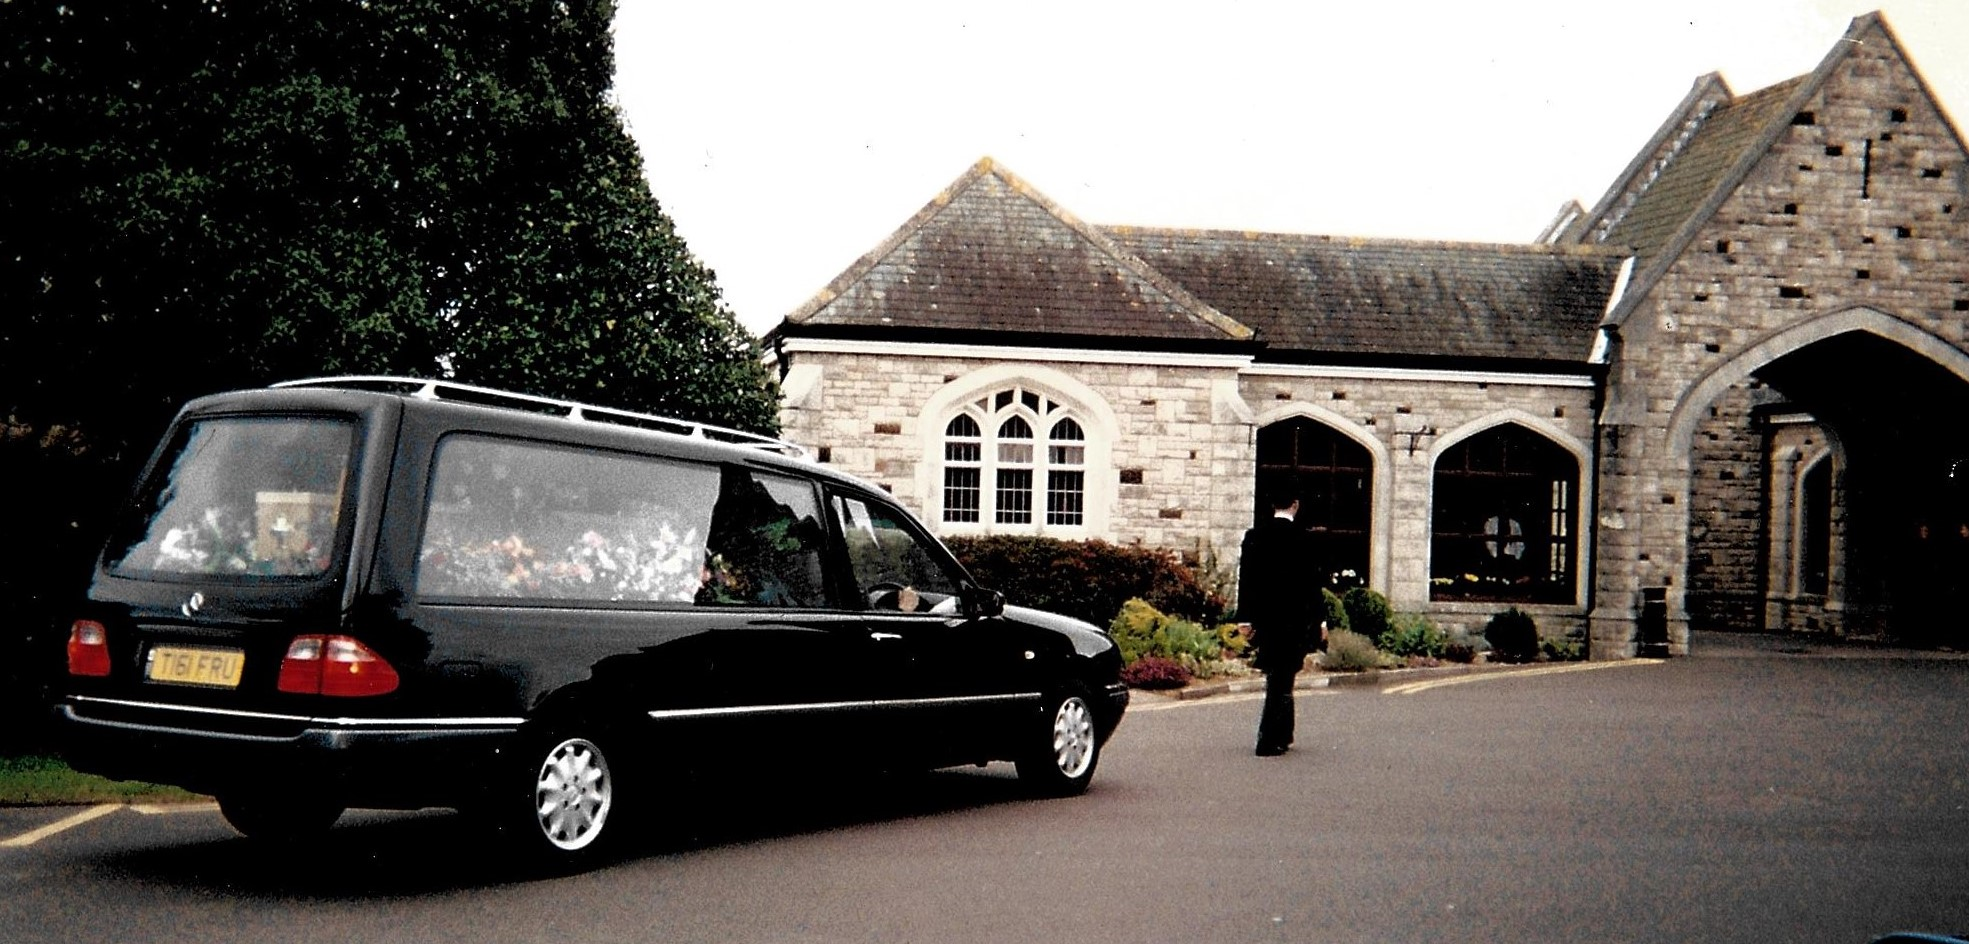 George Scott Funeral Directors procession